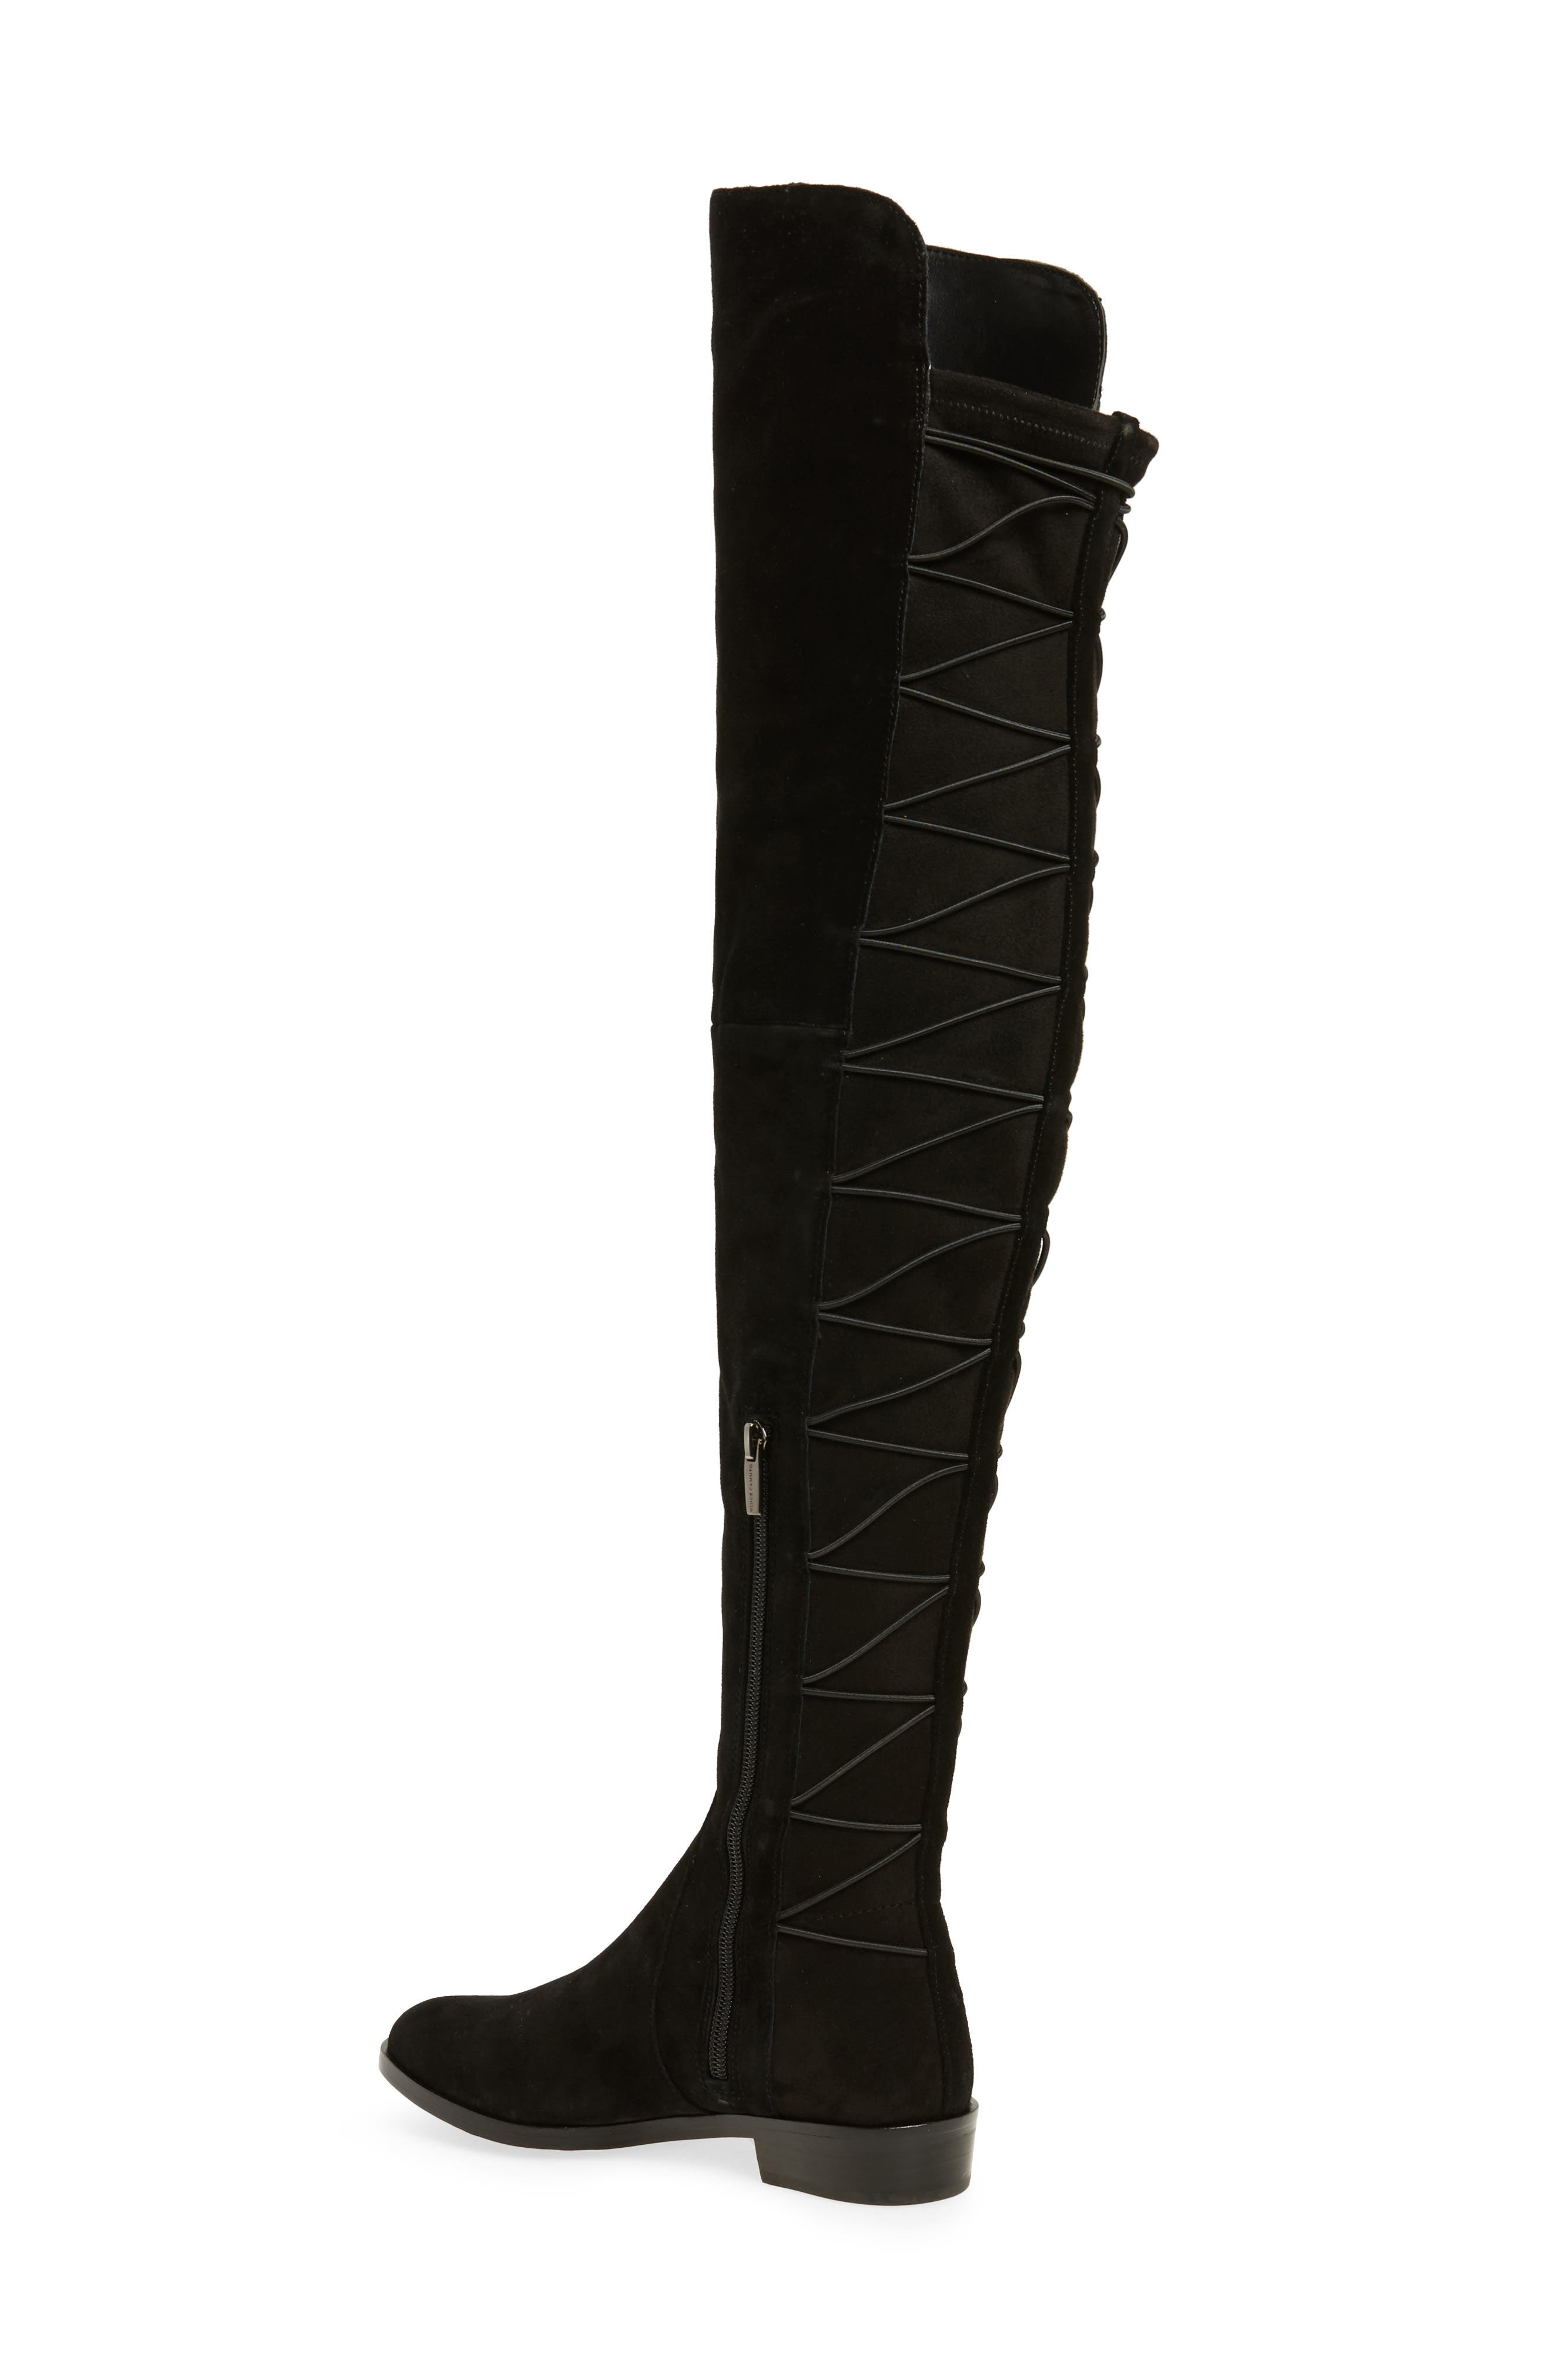 Croatia Over the Knee Boot,                             Alternate thumbnail 2, color,                             002